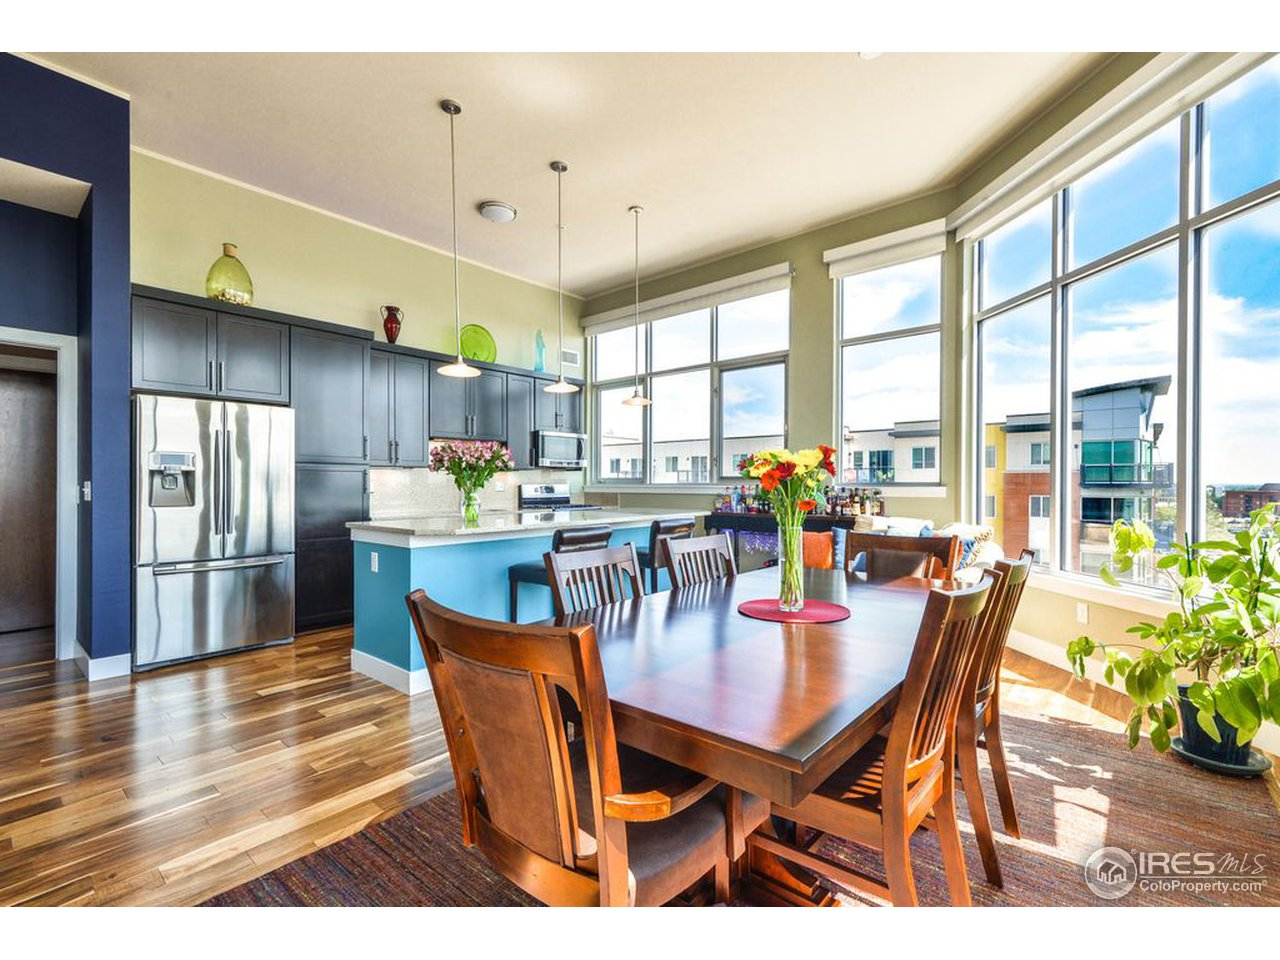 204 Maple St 407, Fort Collins CO 80521